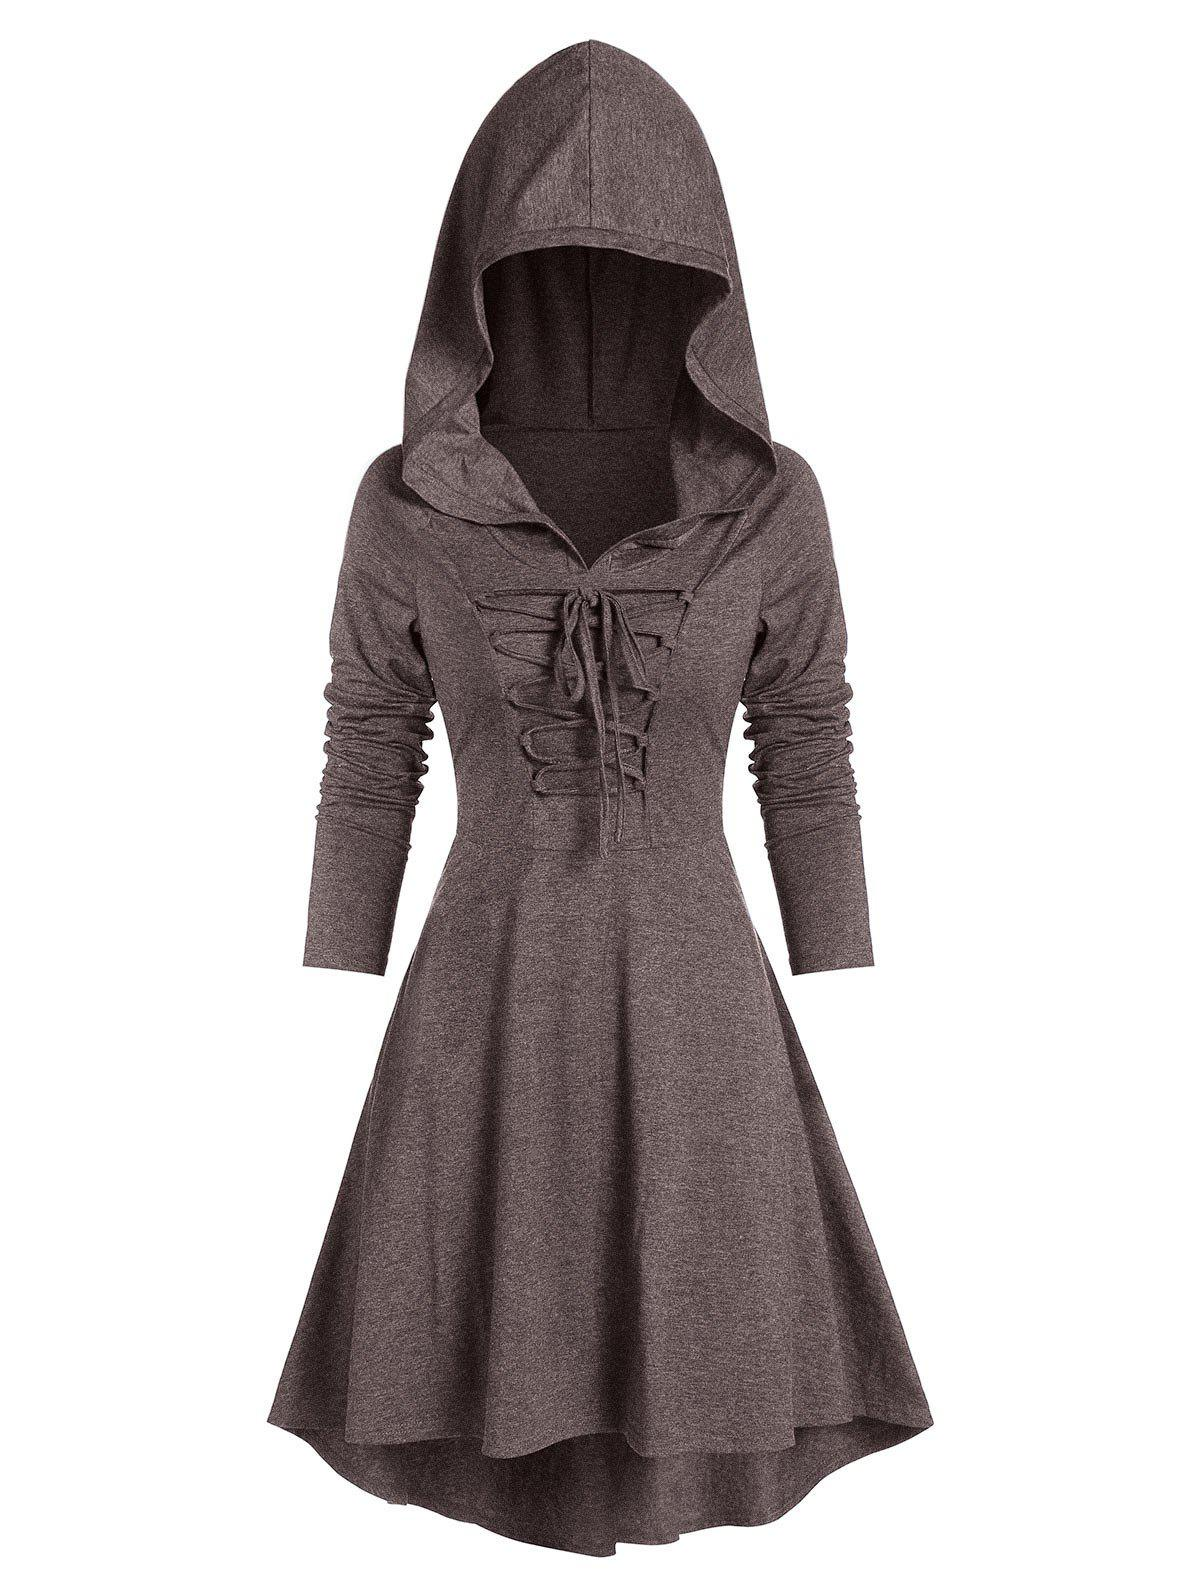 Hooded Lace-up Heathered High Low Gothic Dress - COFFEE 3XL